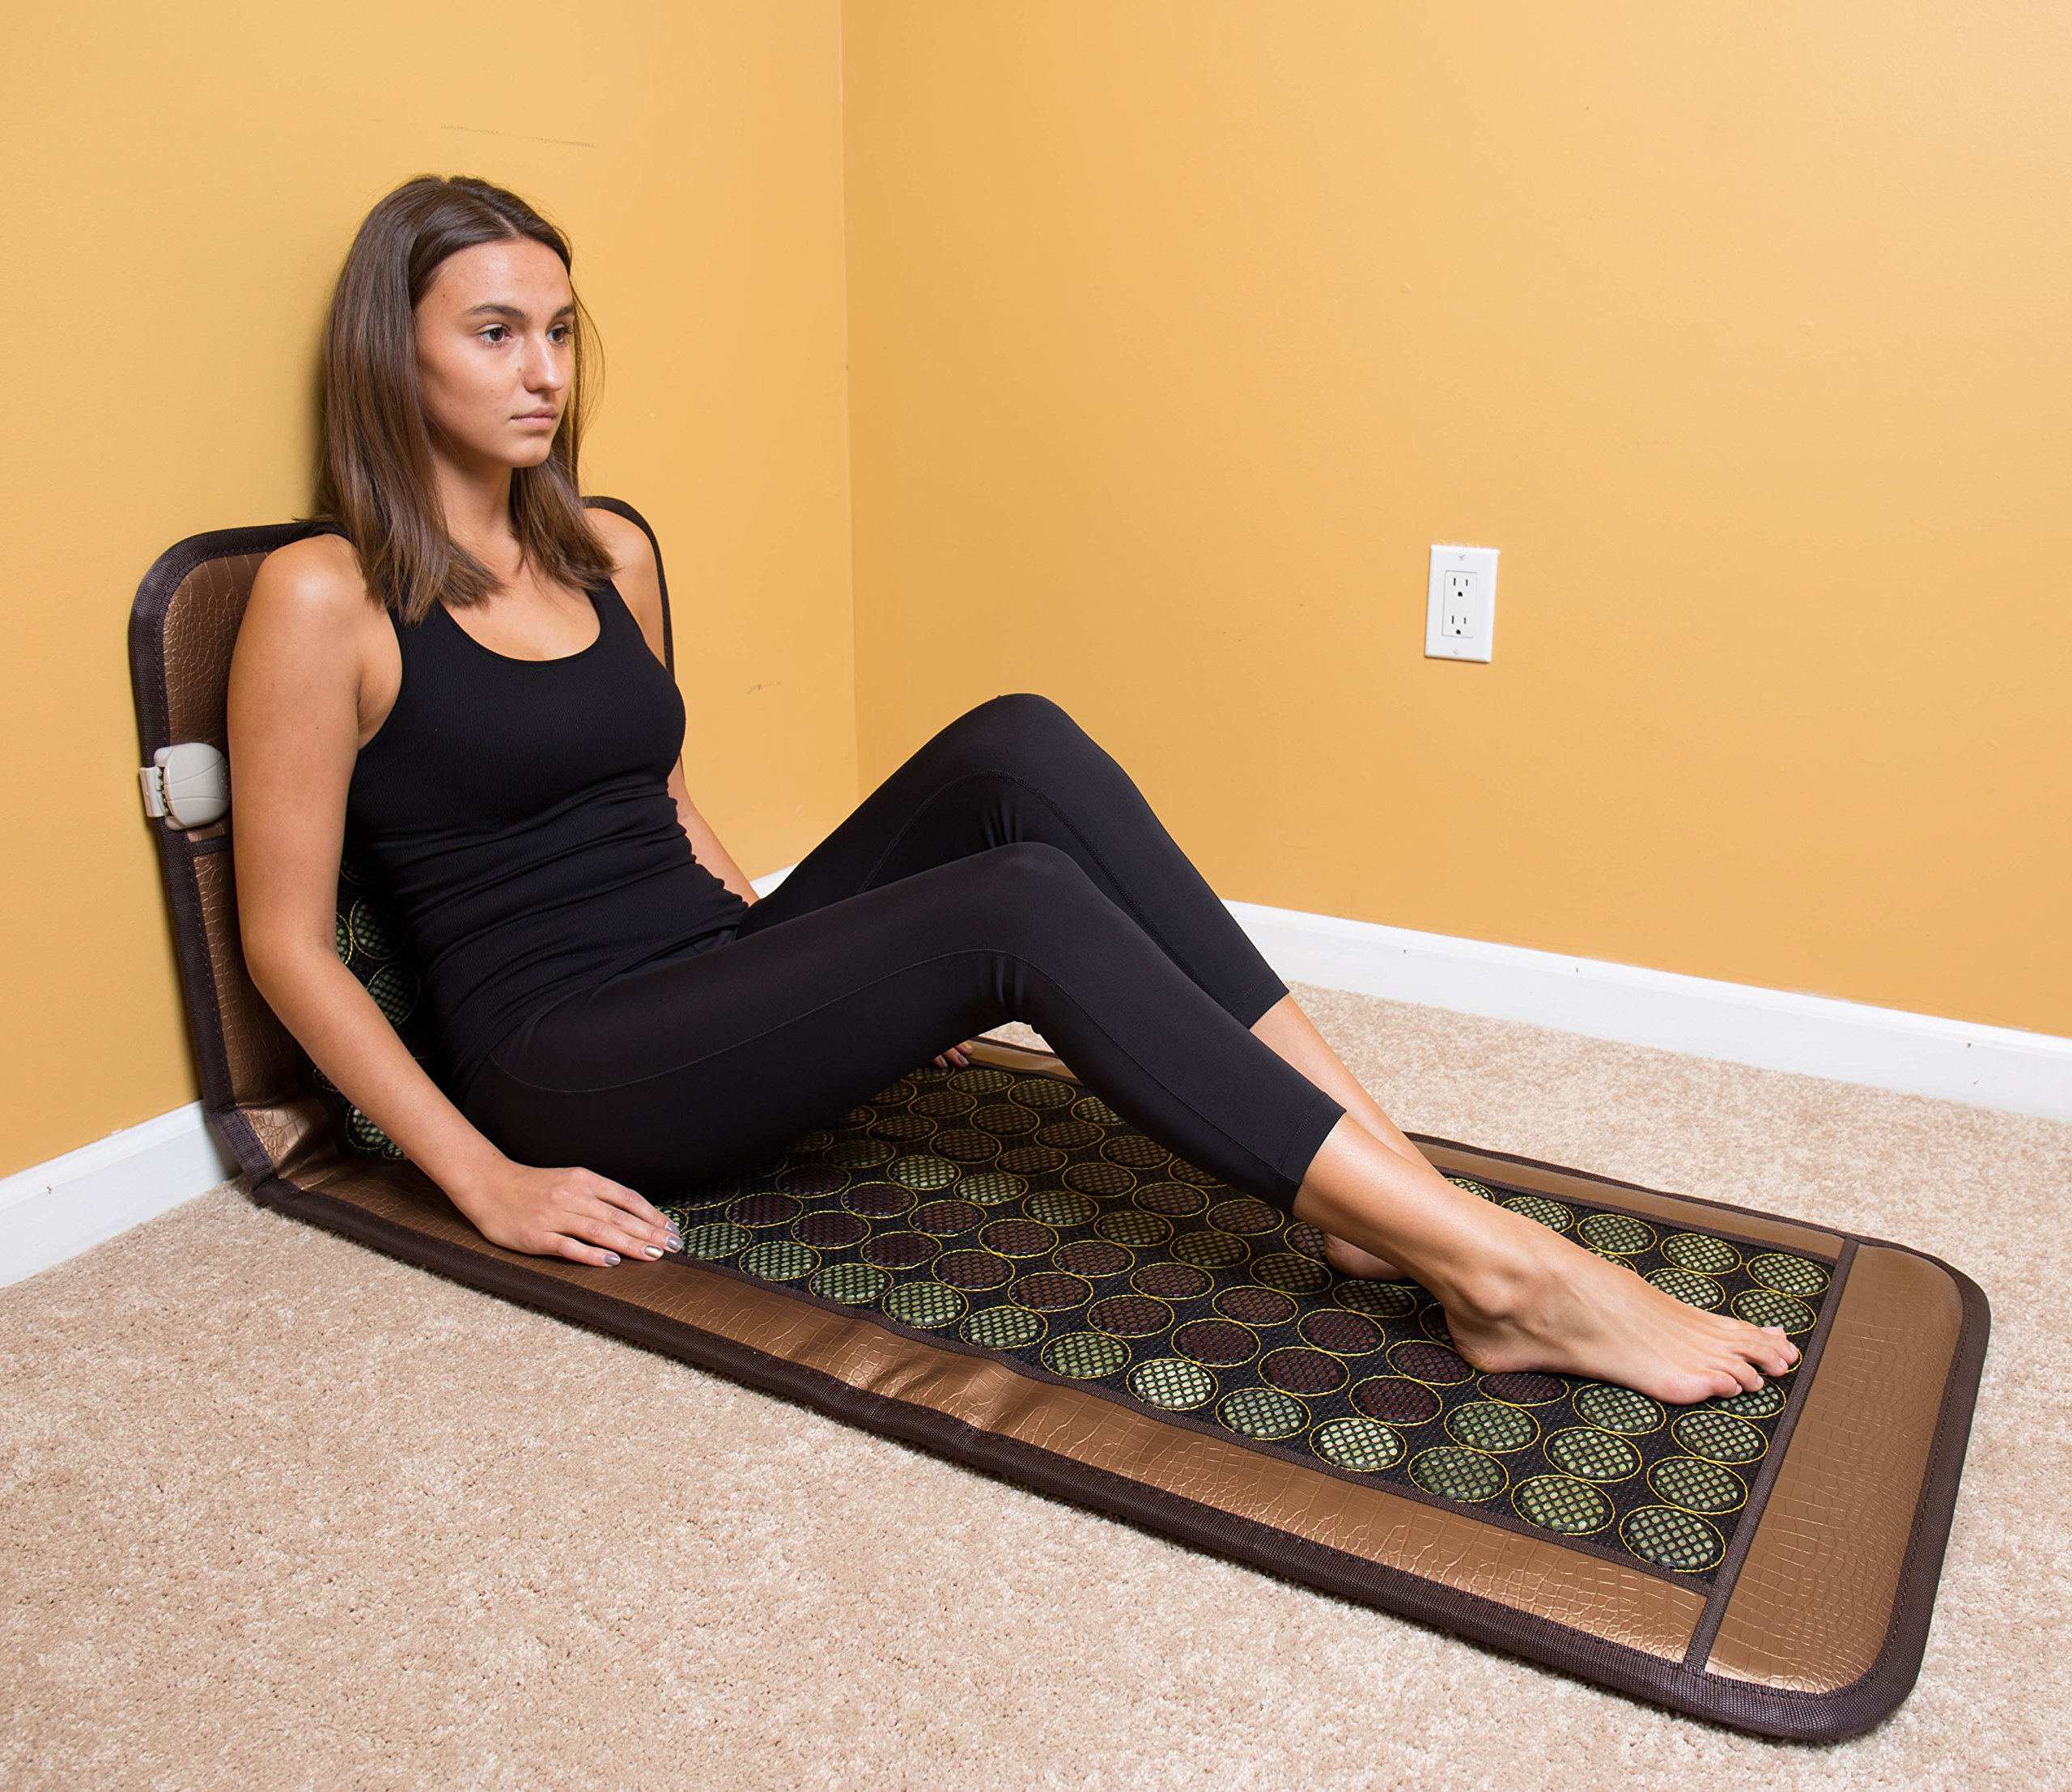 HealthyLine Far Infrared Heating Mat 72''X24'' Relieve Muscles Pain & Insomnia| Natural Jade & Tourmaline Stone | Negative Ions (Large & Flex) | US FDA by HealthyLine (Image #4)